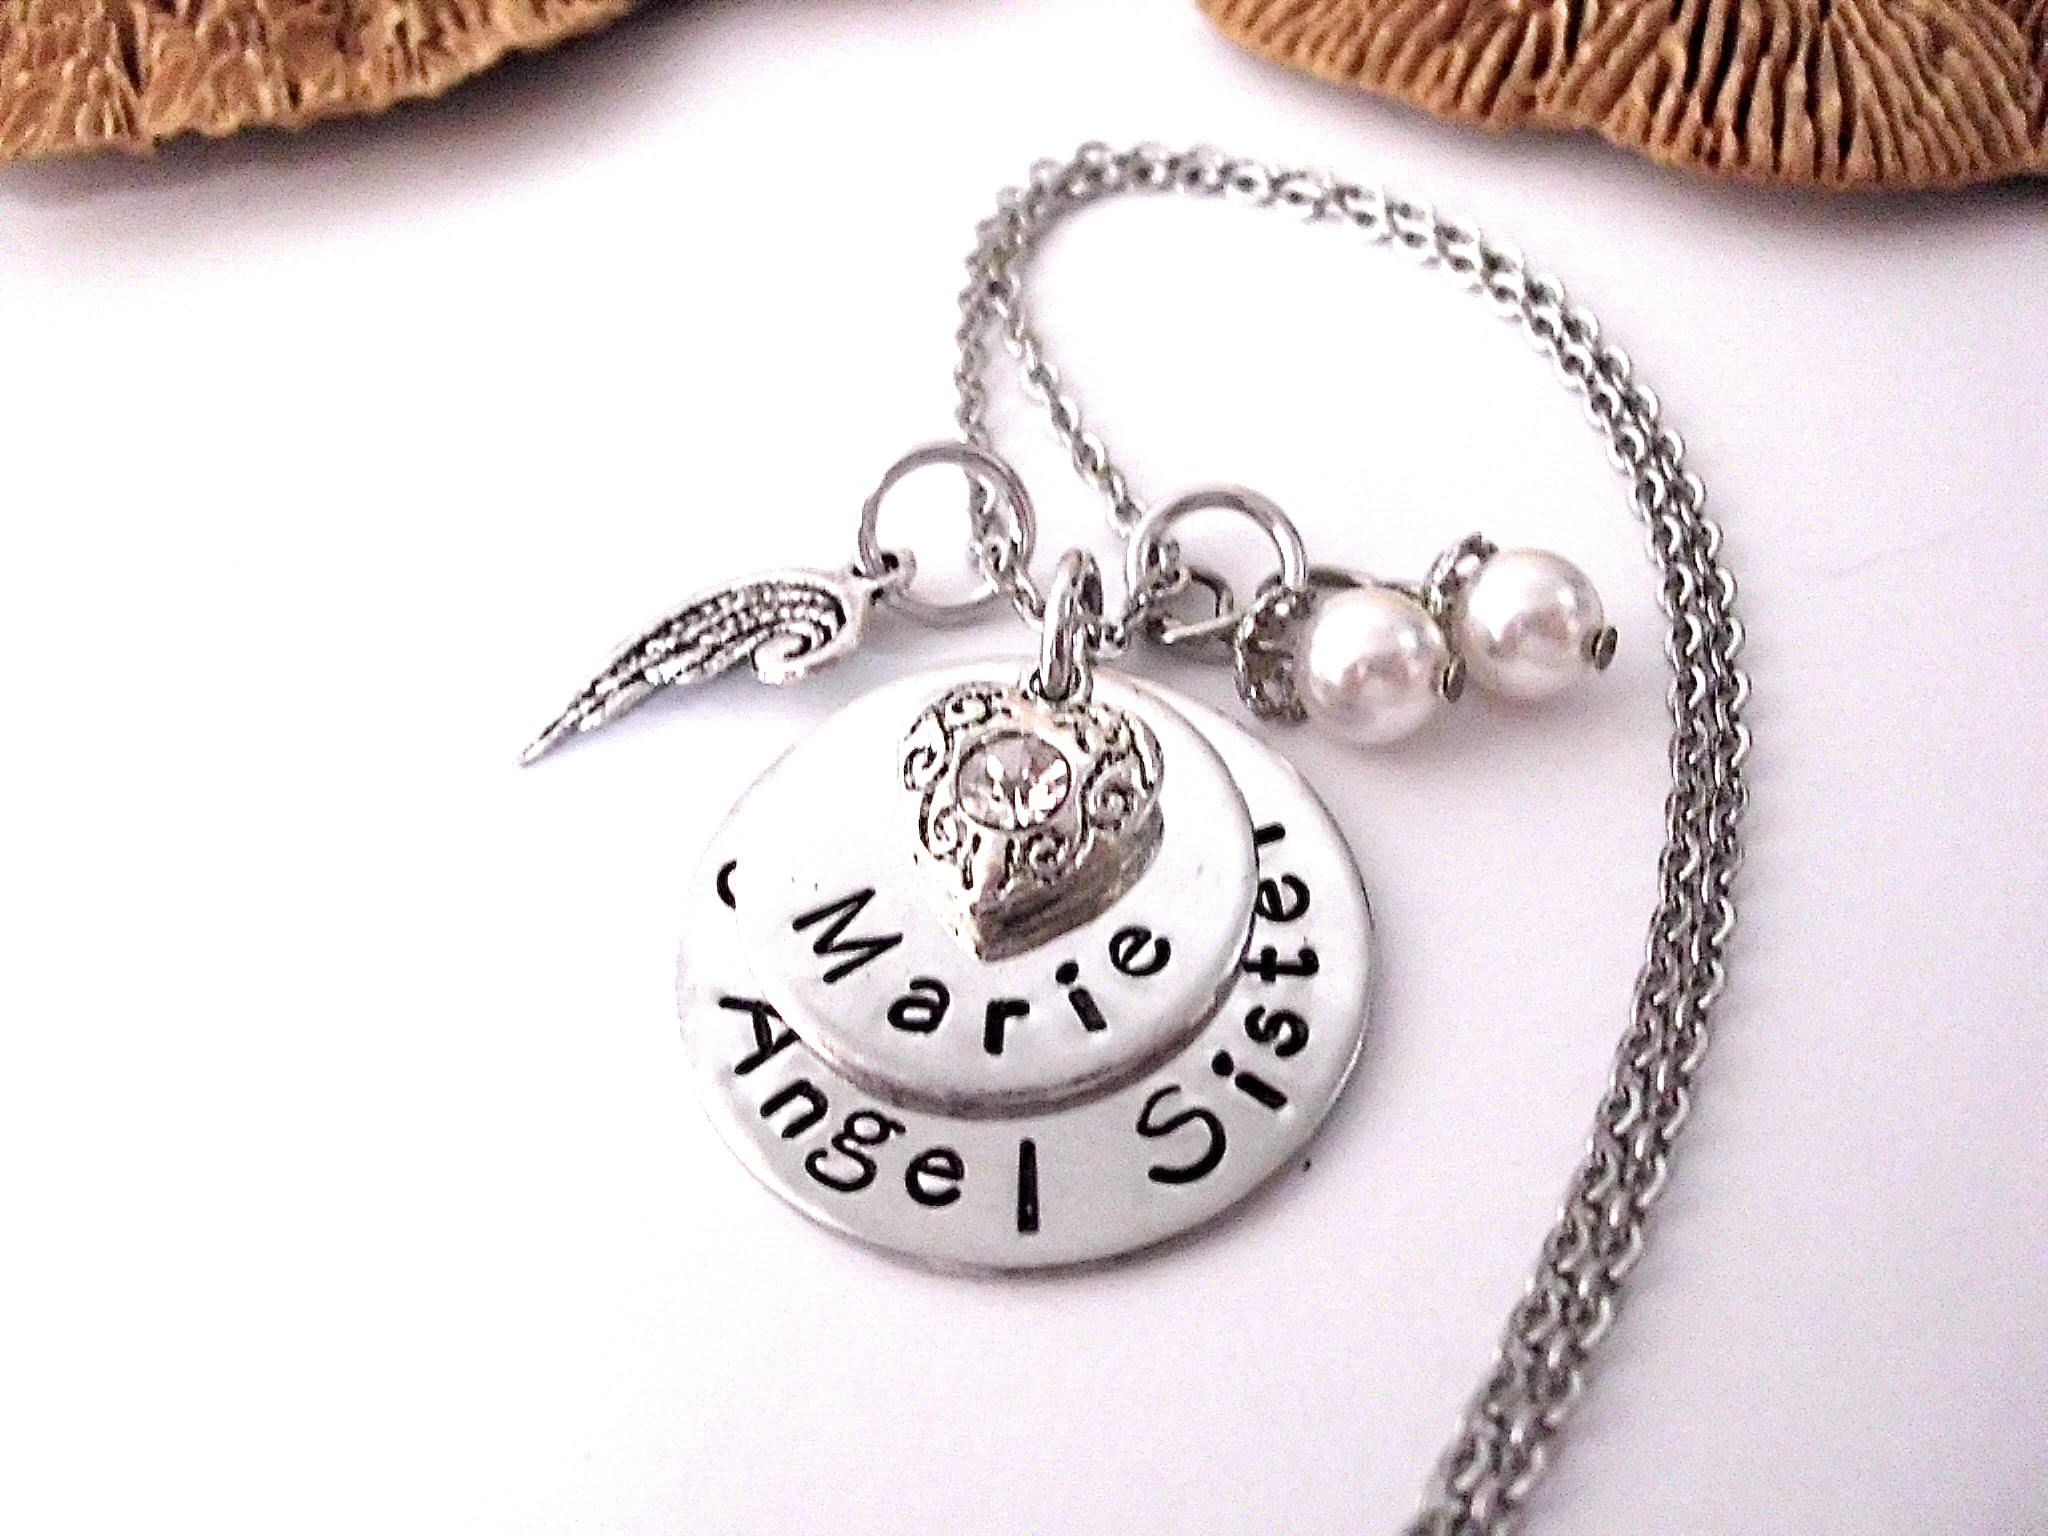 store loved necklace round steel handwriting s memorial engraved custom with your jewelry one stainless disc writing personalized own